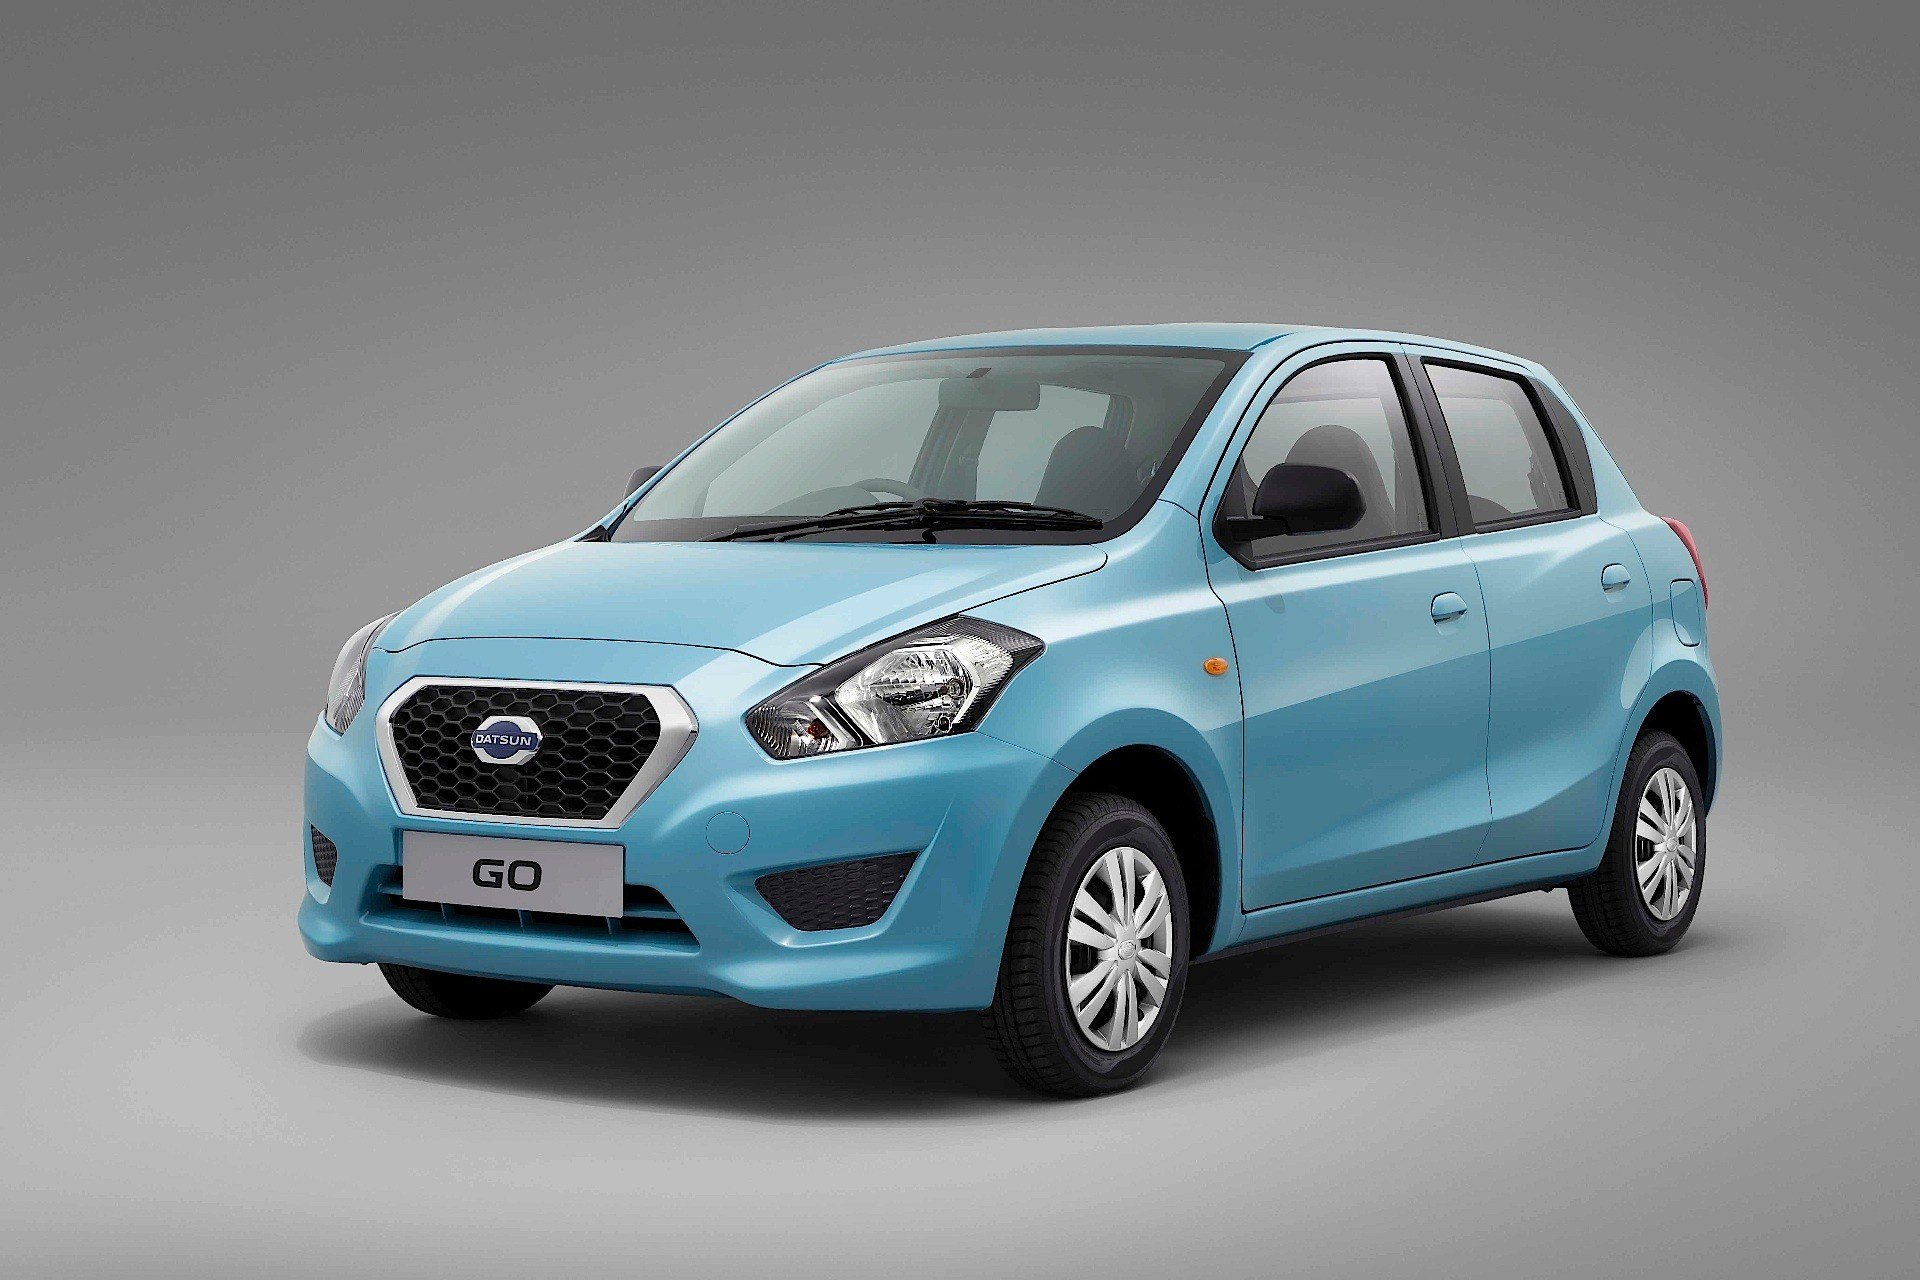 New Datsun Go Specs Photos 2013 2014 2015 2016 2017 On This Month